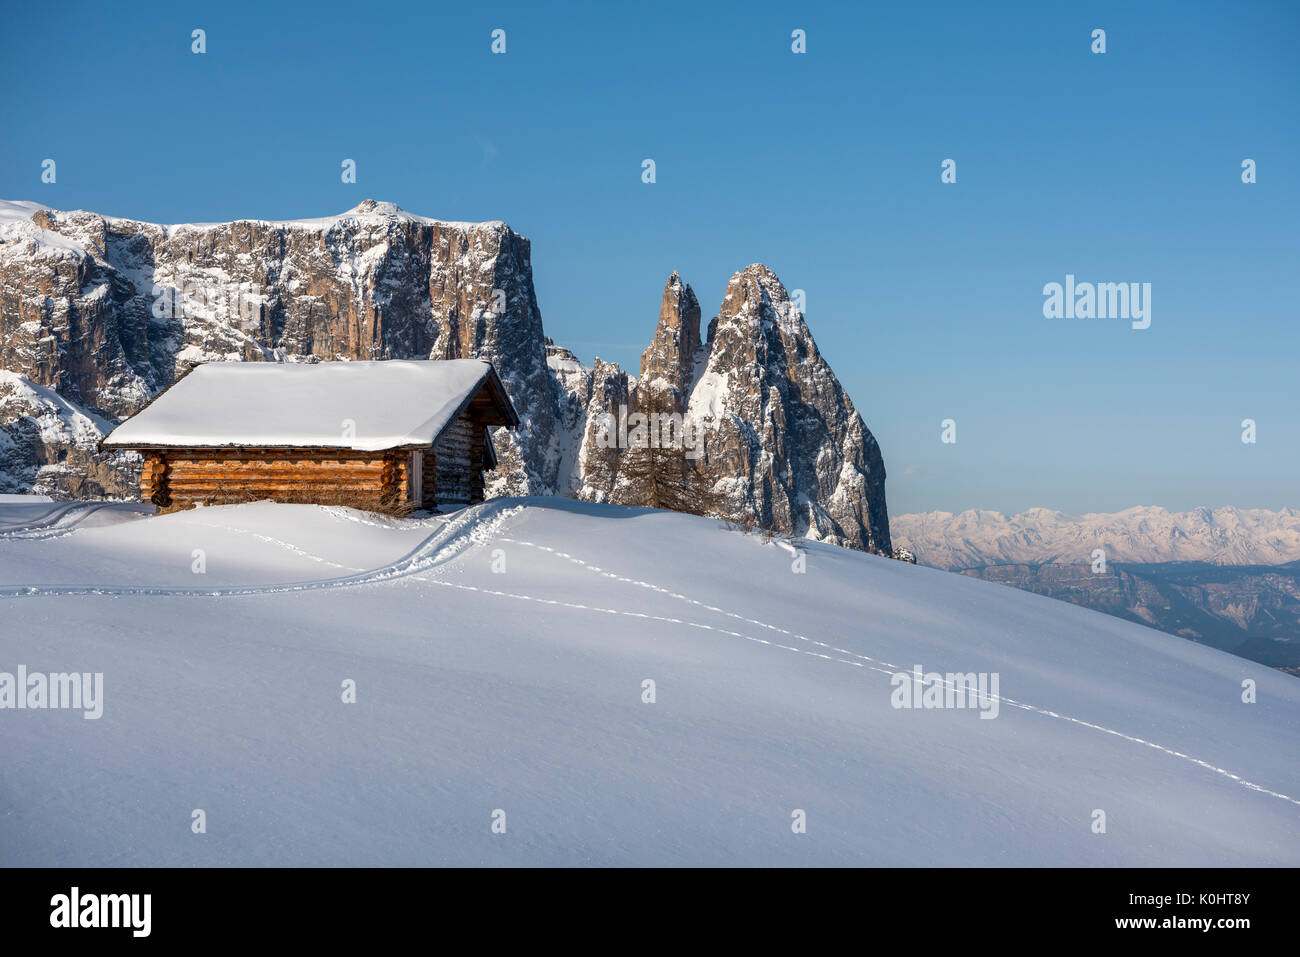 Alpe di Siusi/Seiser Alm, Dolomites, South Tyrol, Italy. Winter landscape on the Alpe di Siusi/Seiser Alm with the Stock Photo